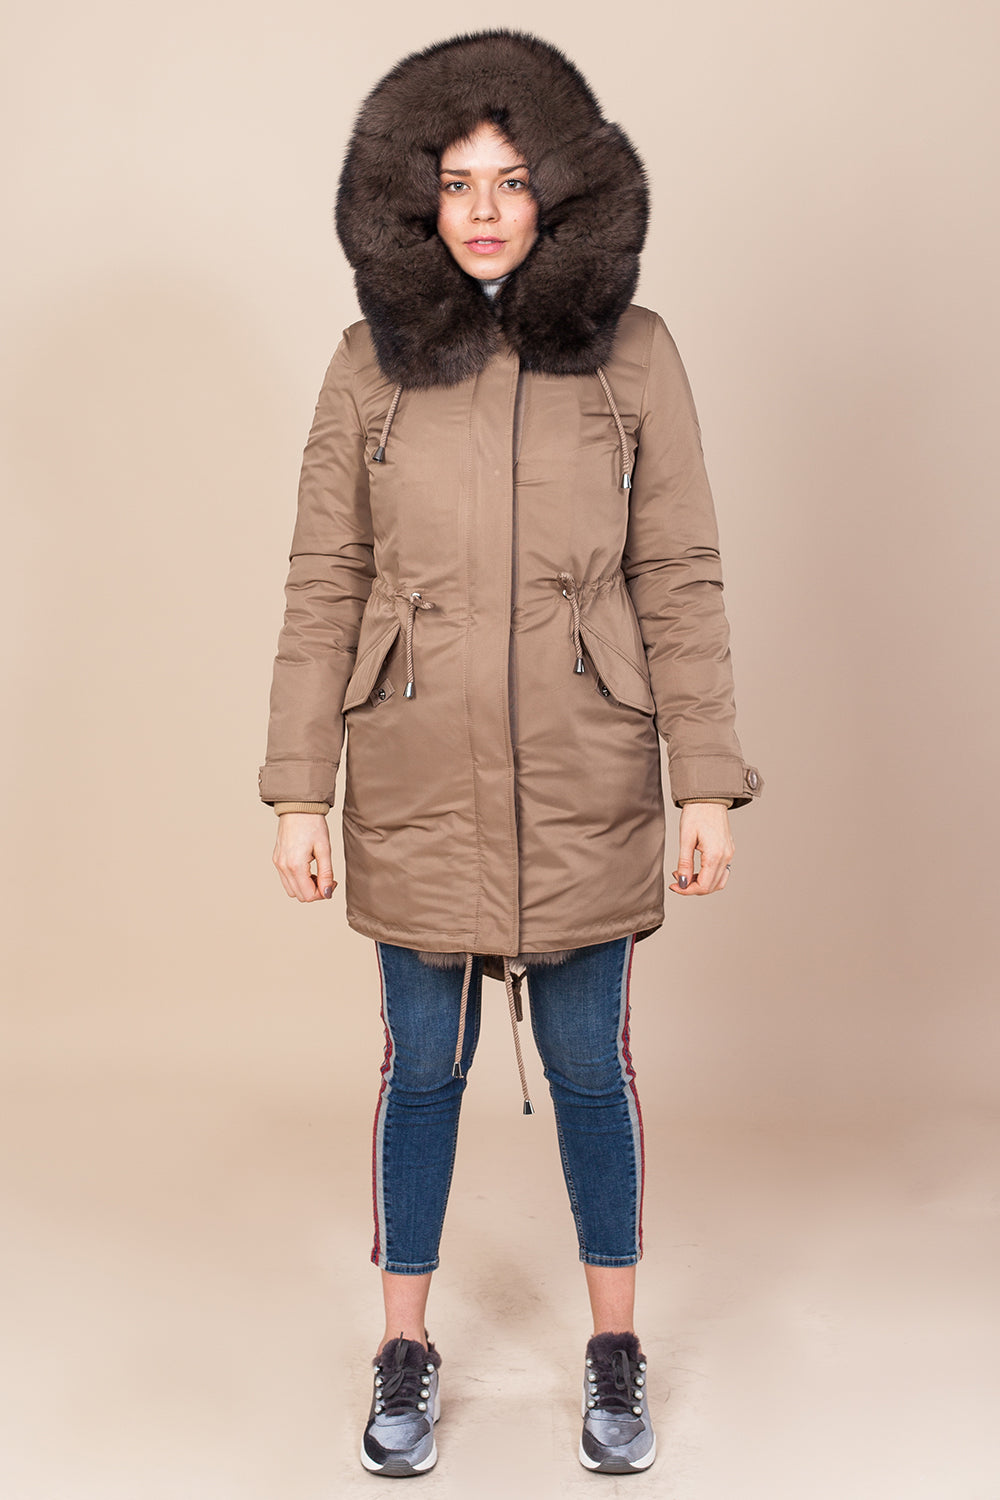 Cappuccino Parka Main Fabric is Waterproof / Raincoat Fabric With Dark Brown / Blue Fox